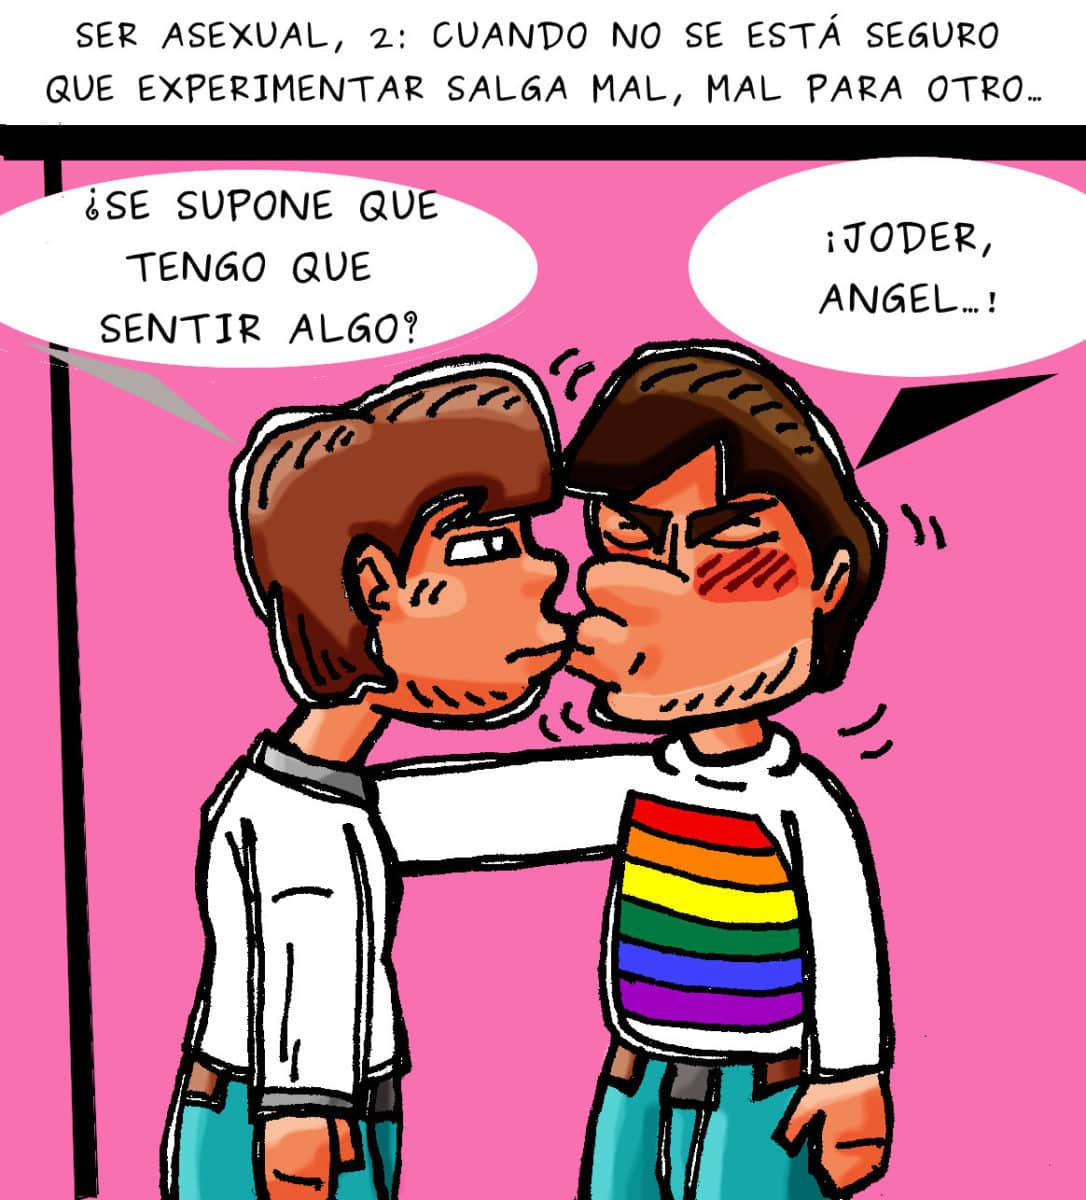 asexualidad-1